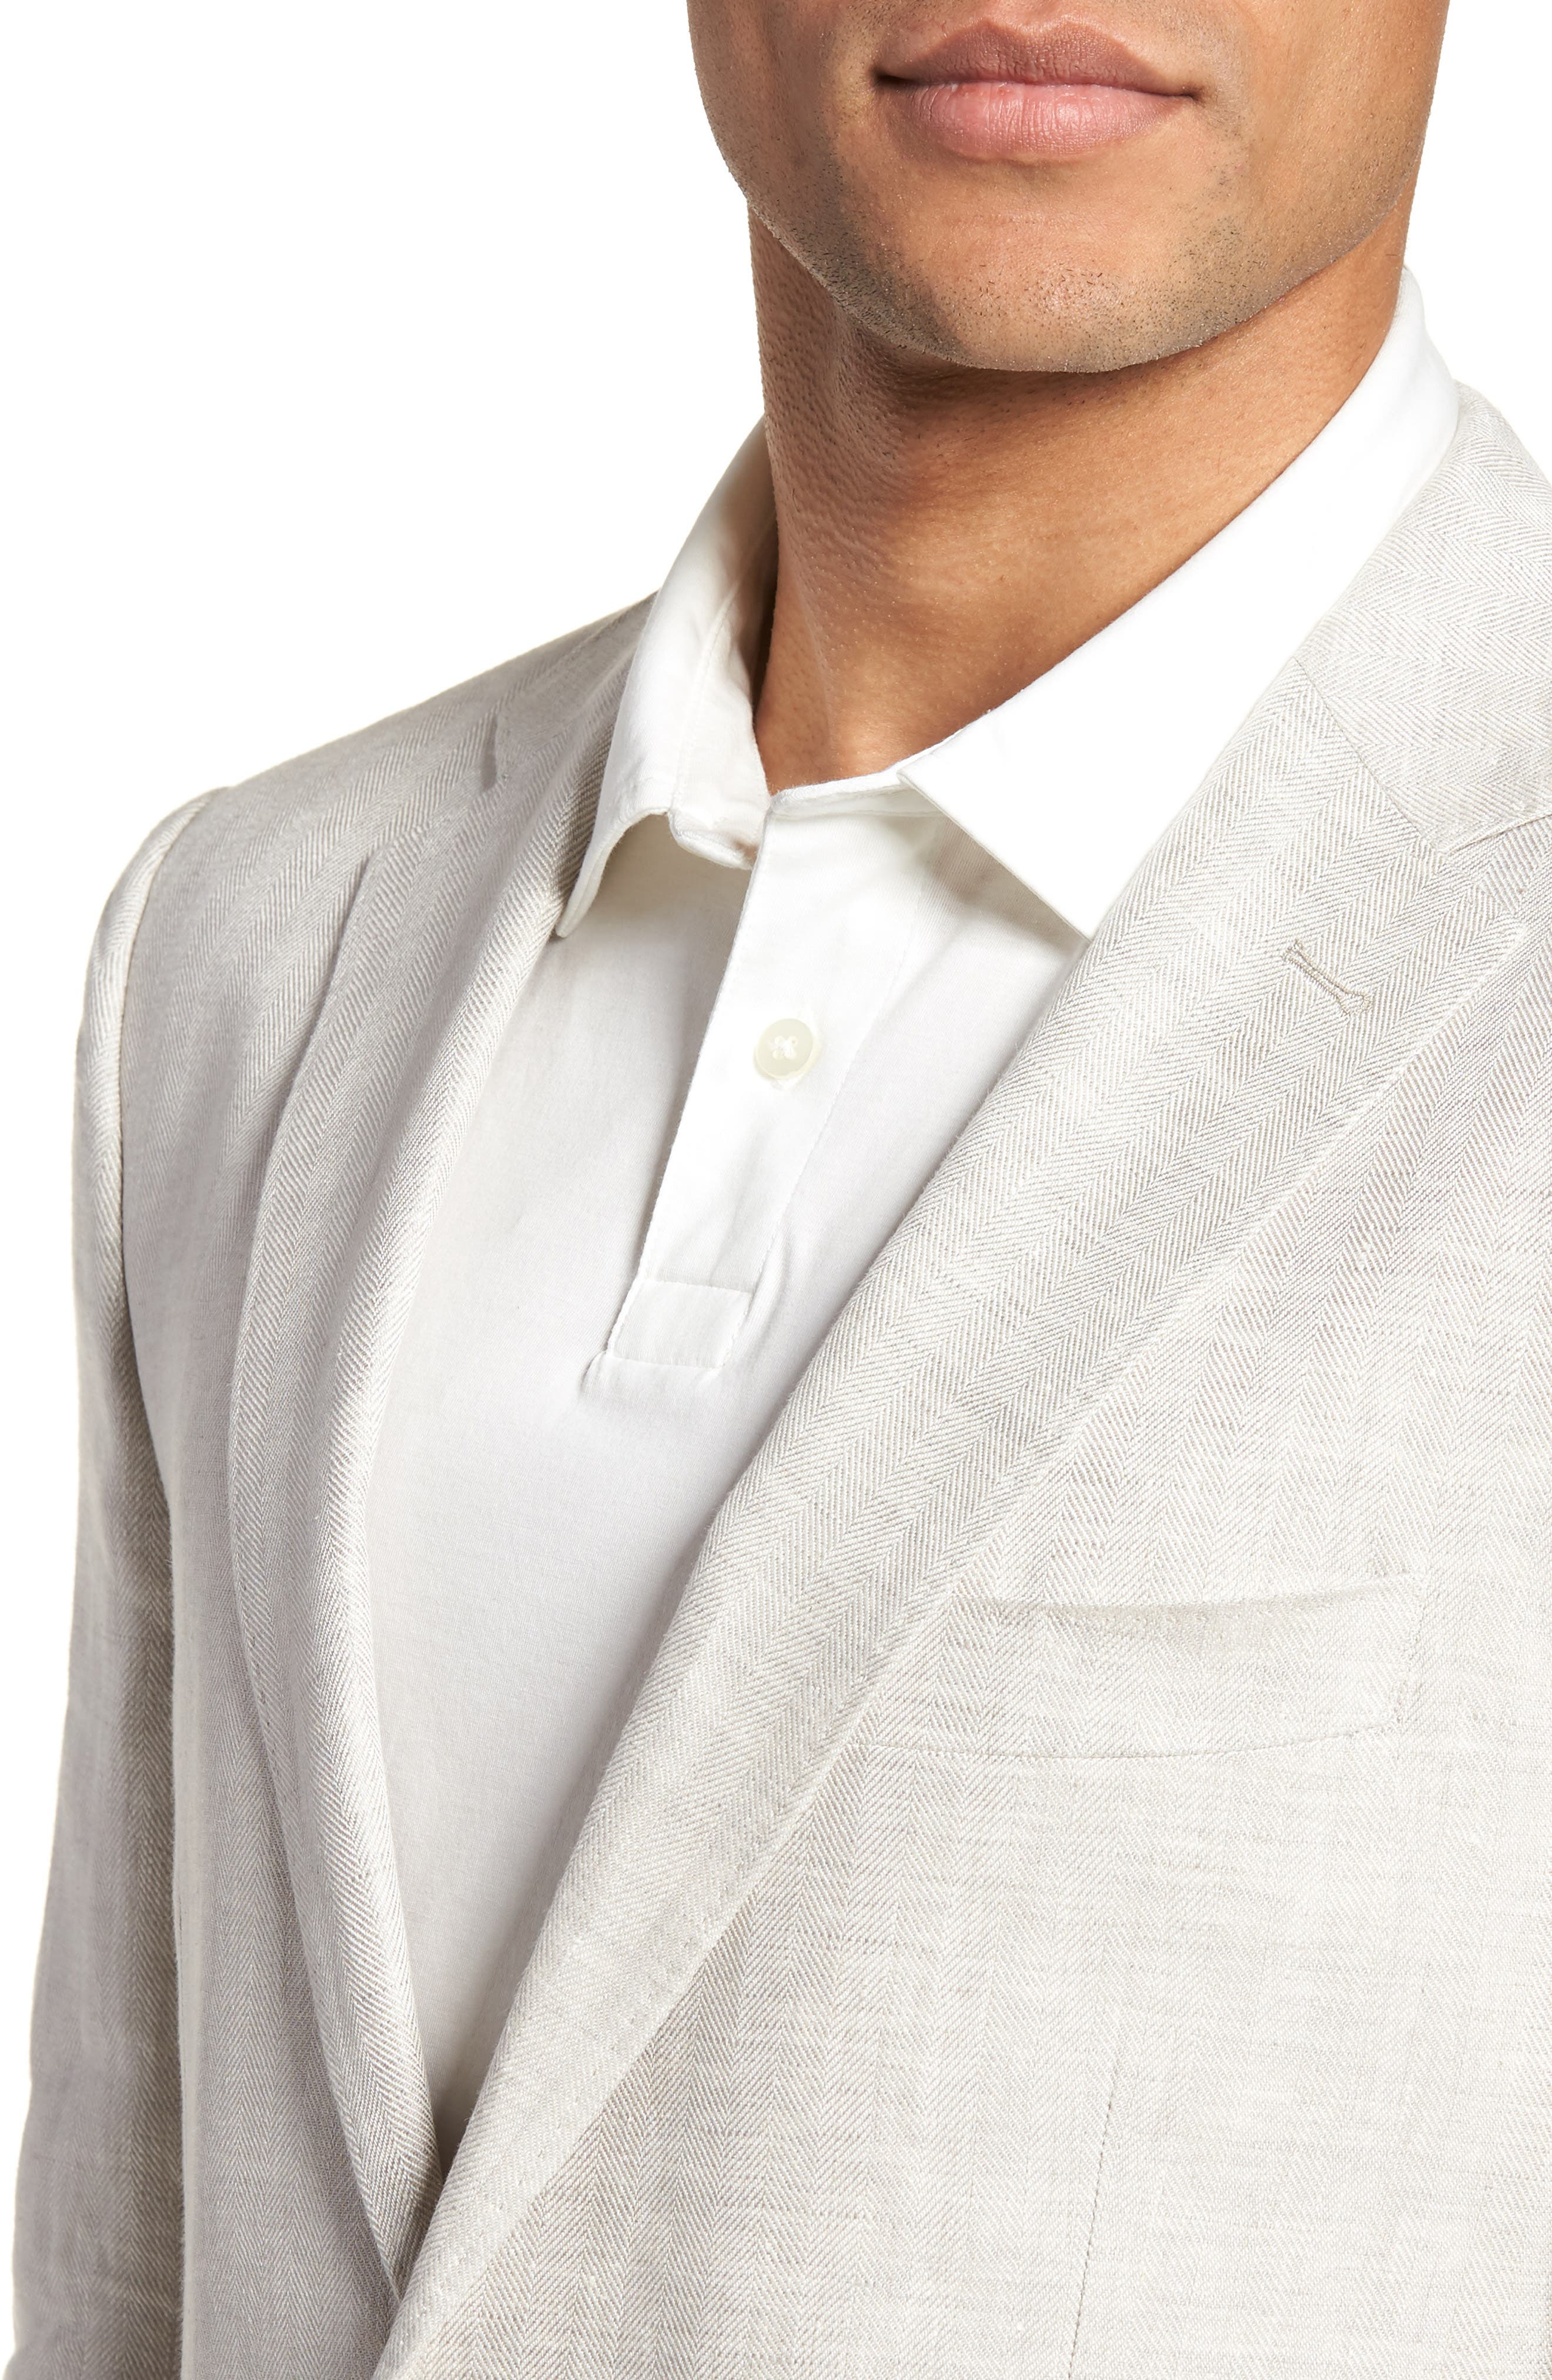 Benson Road Linen Sport Coat,                             Alternate thumbnail 4, color,                             NATURAL